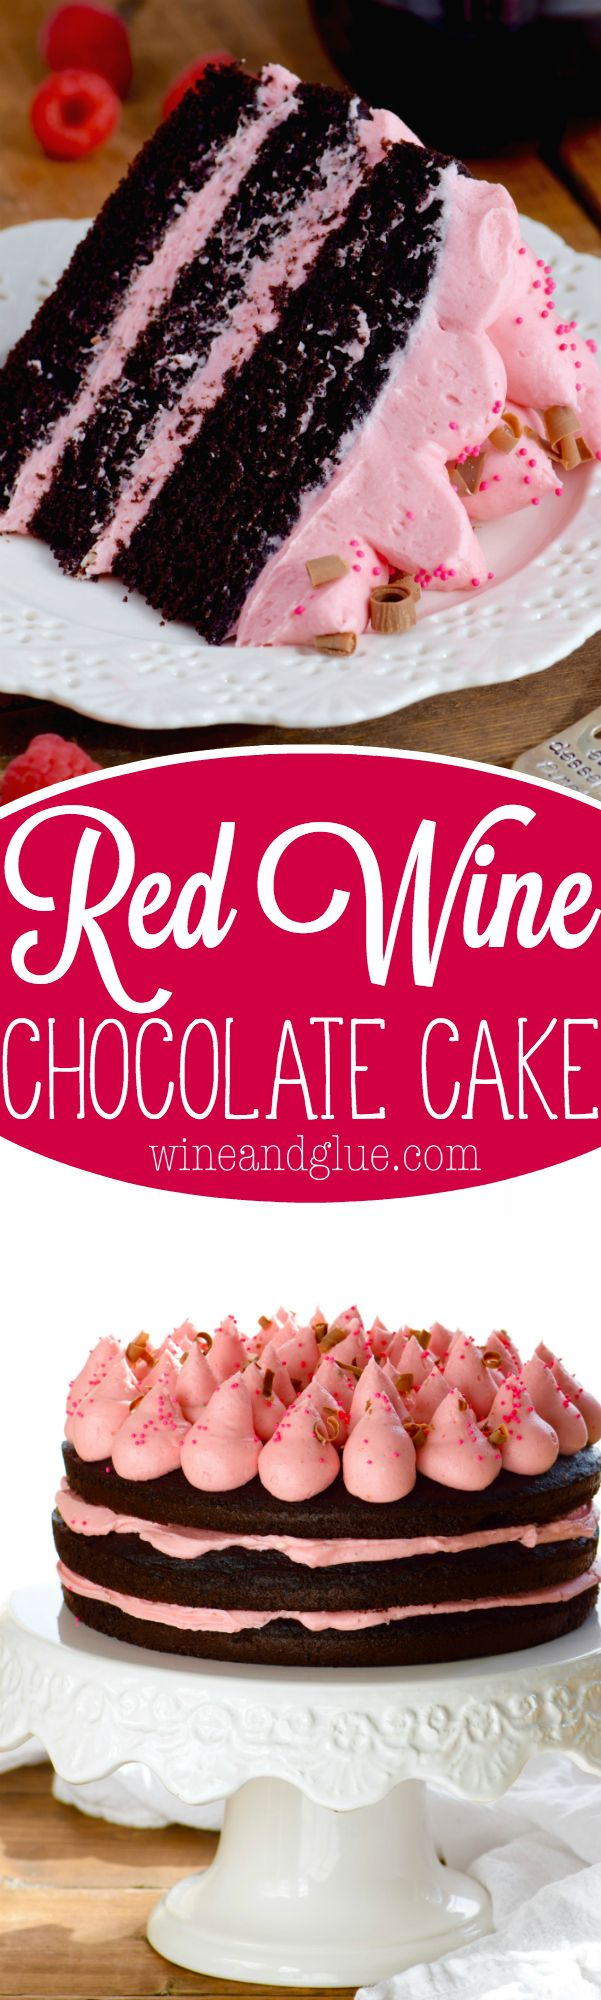 This Red Wine Chocolate is deep, delicious, rich and perfect to entertain with!